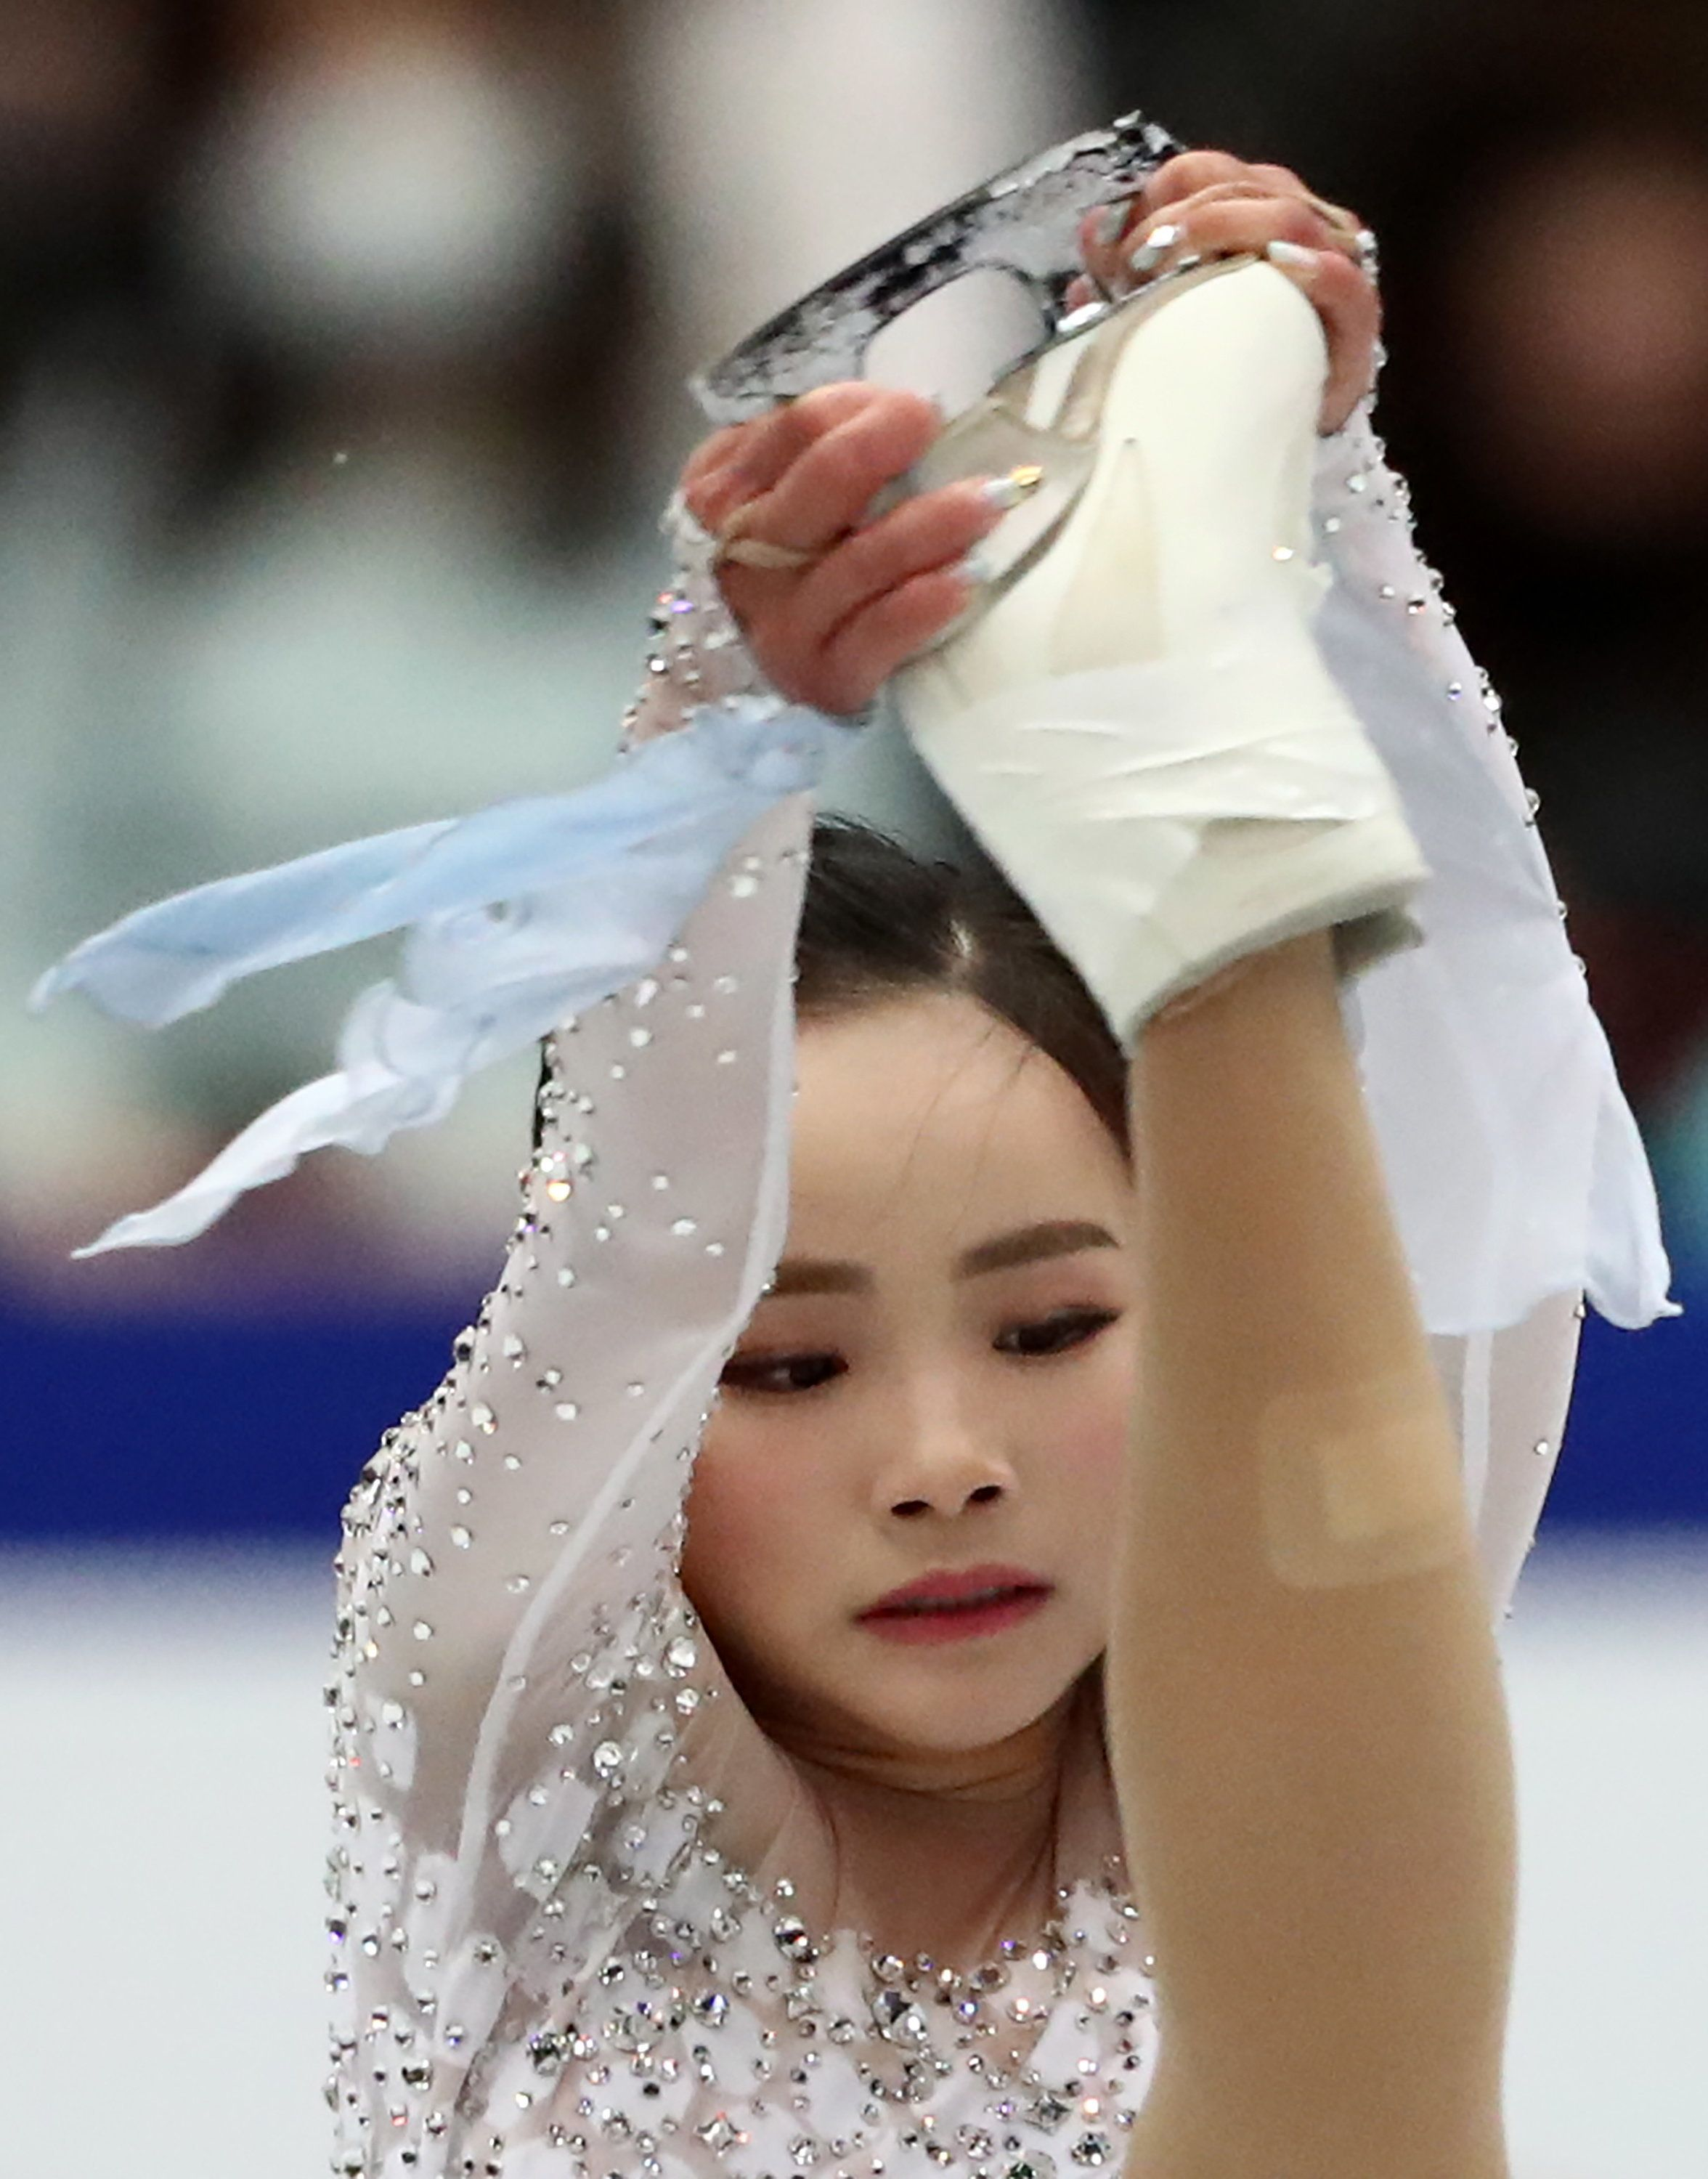 Lim Eun-soo was photographed with a large bandage on her leg during the ladies' short program event on Wednesday.